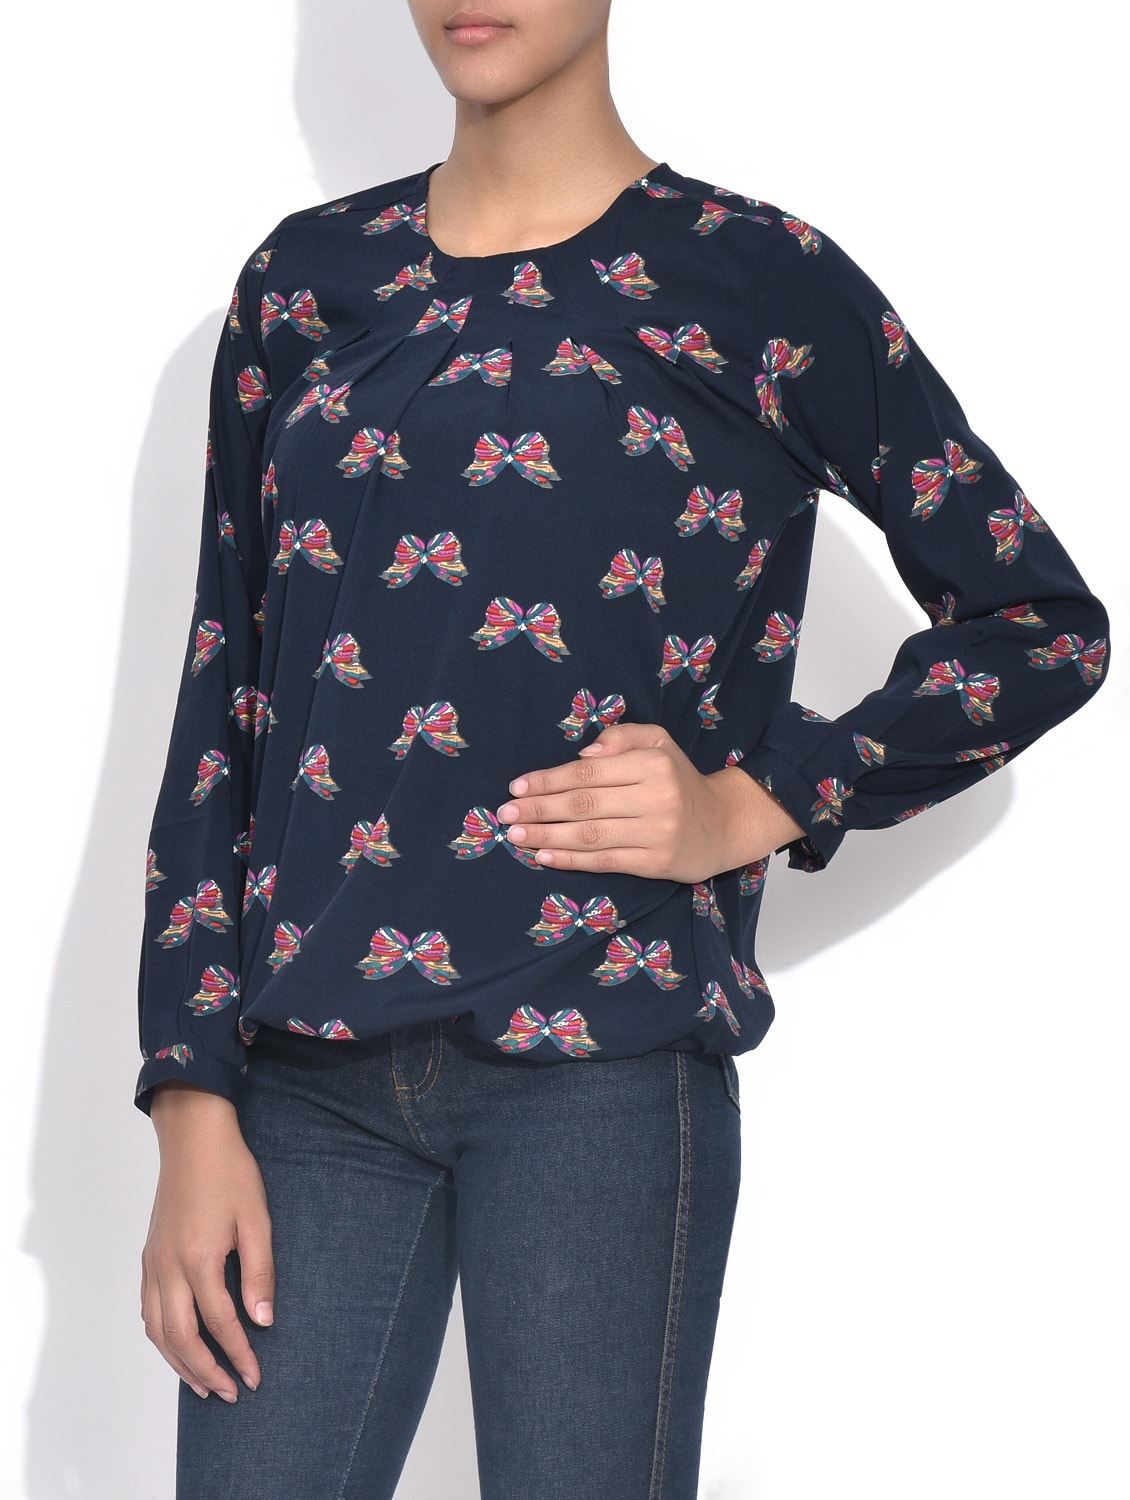 b71160bfd90bcf Buy Navy Blue Butterfly Printed Crepe Top for Women from Color Cocktail for  ₹412 at 54% off